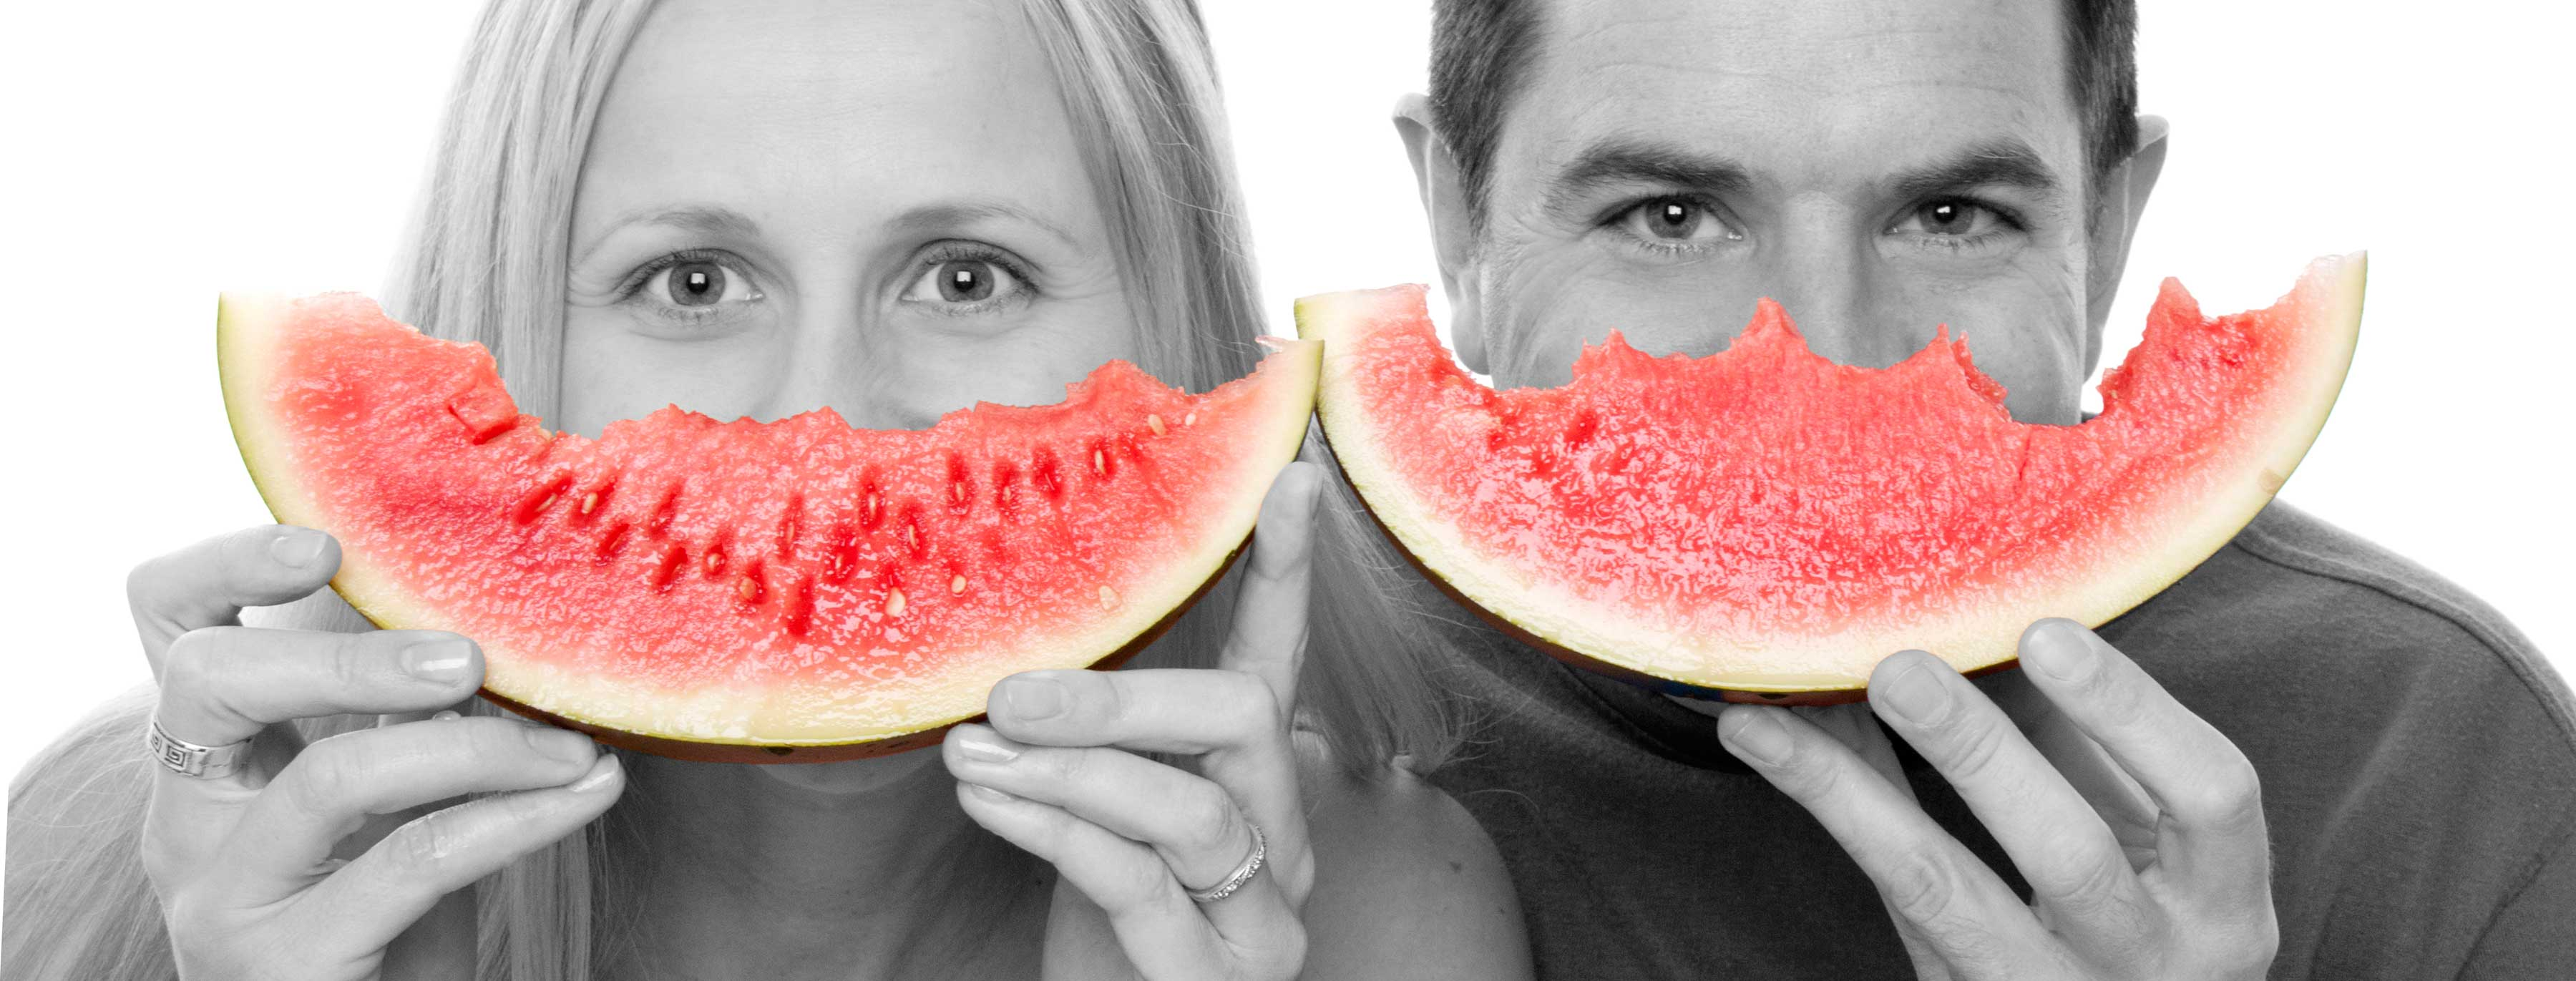 05-Home-Shoot-Couple-Eating-Melons-Colour-Mix-Philip-Murray-Photography-Dublin